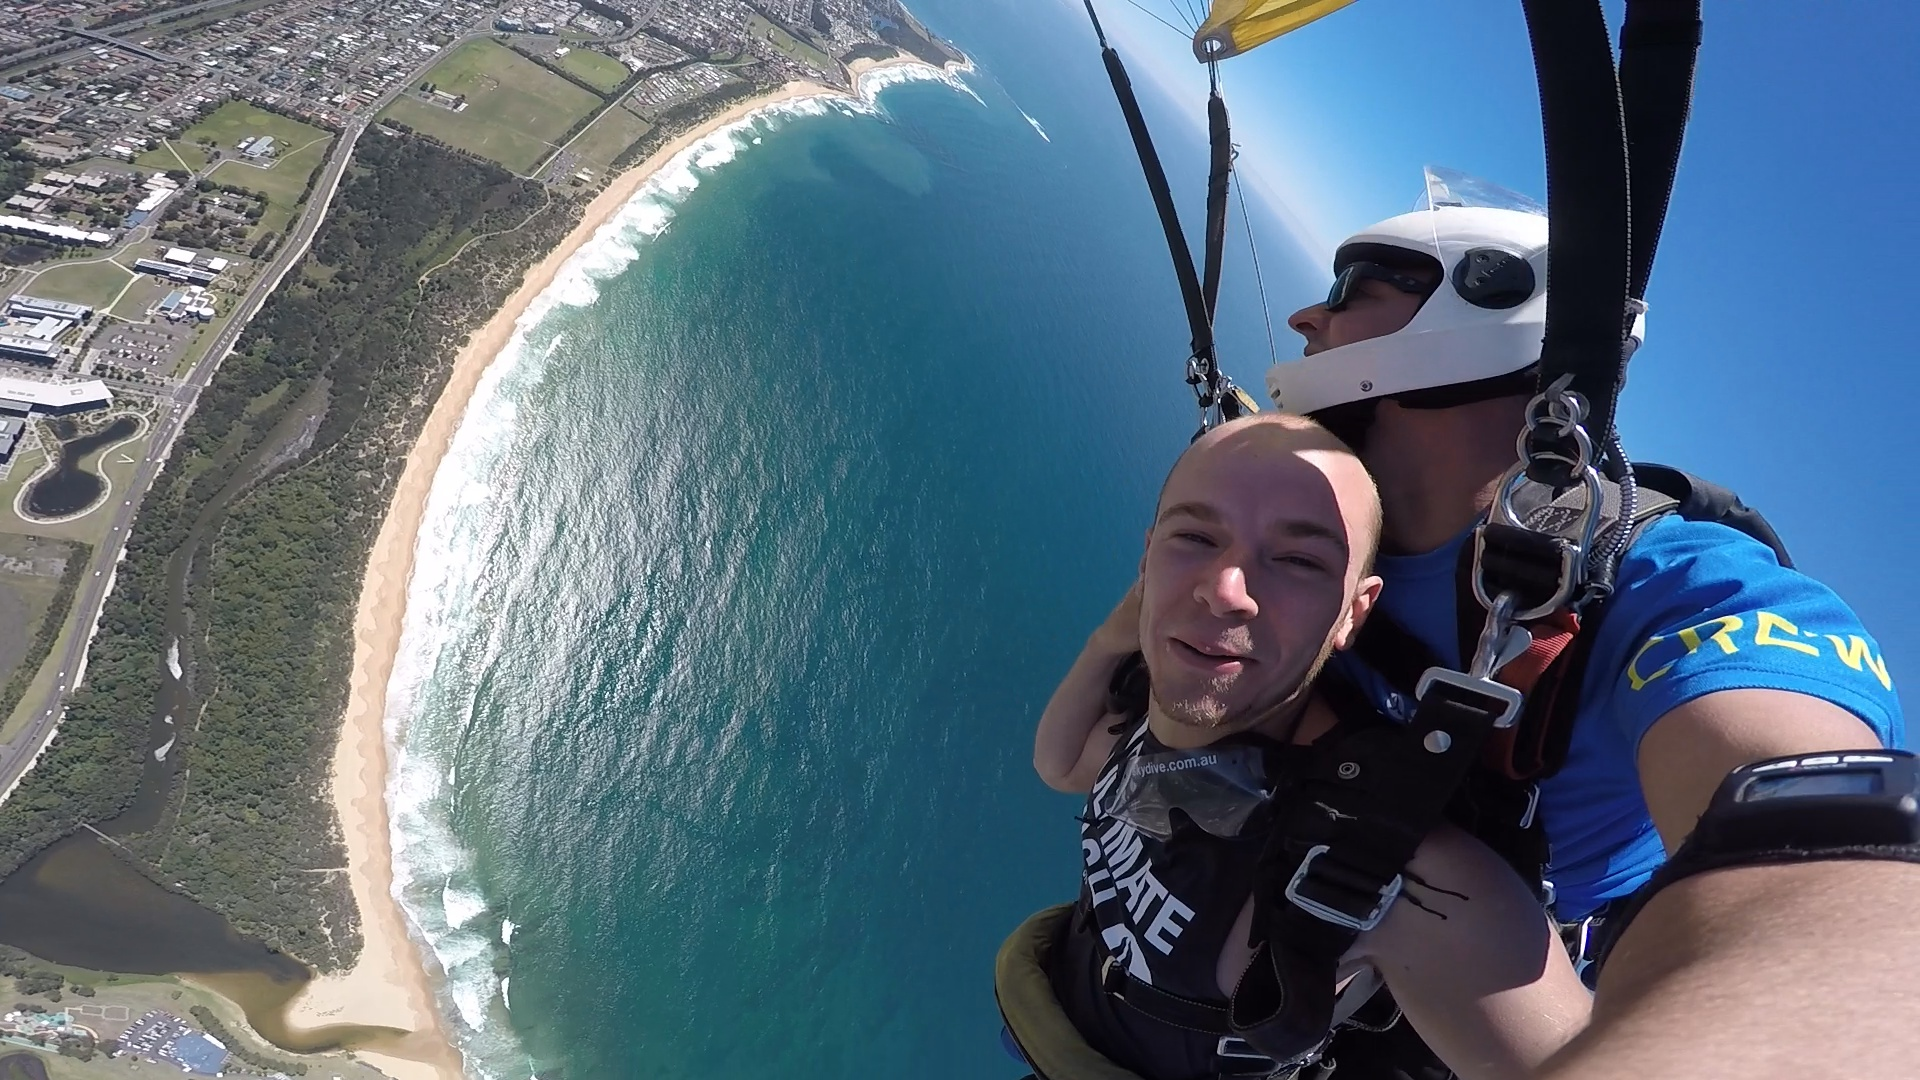 Your Sydney Ultimate Guide: From Skydiving To Feeding Kangaroos